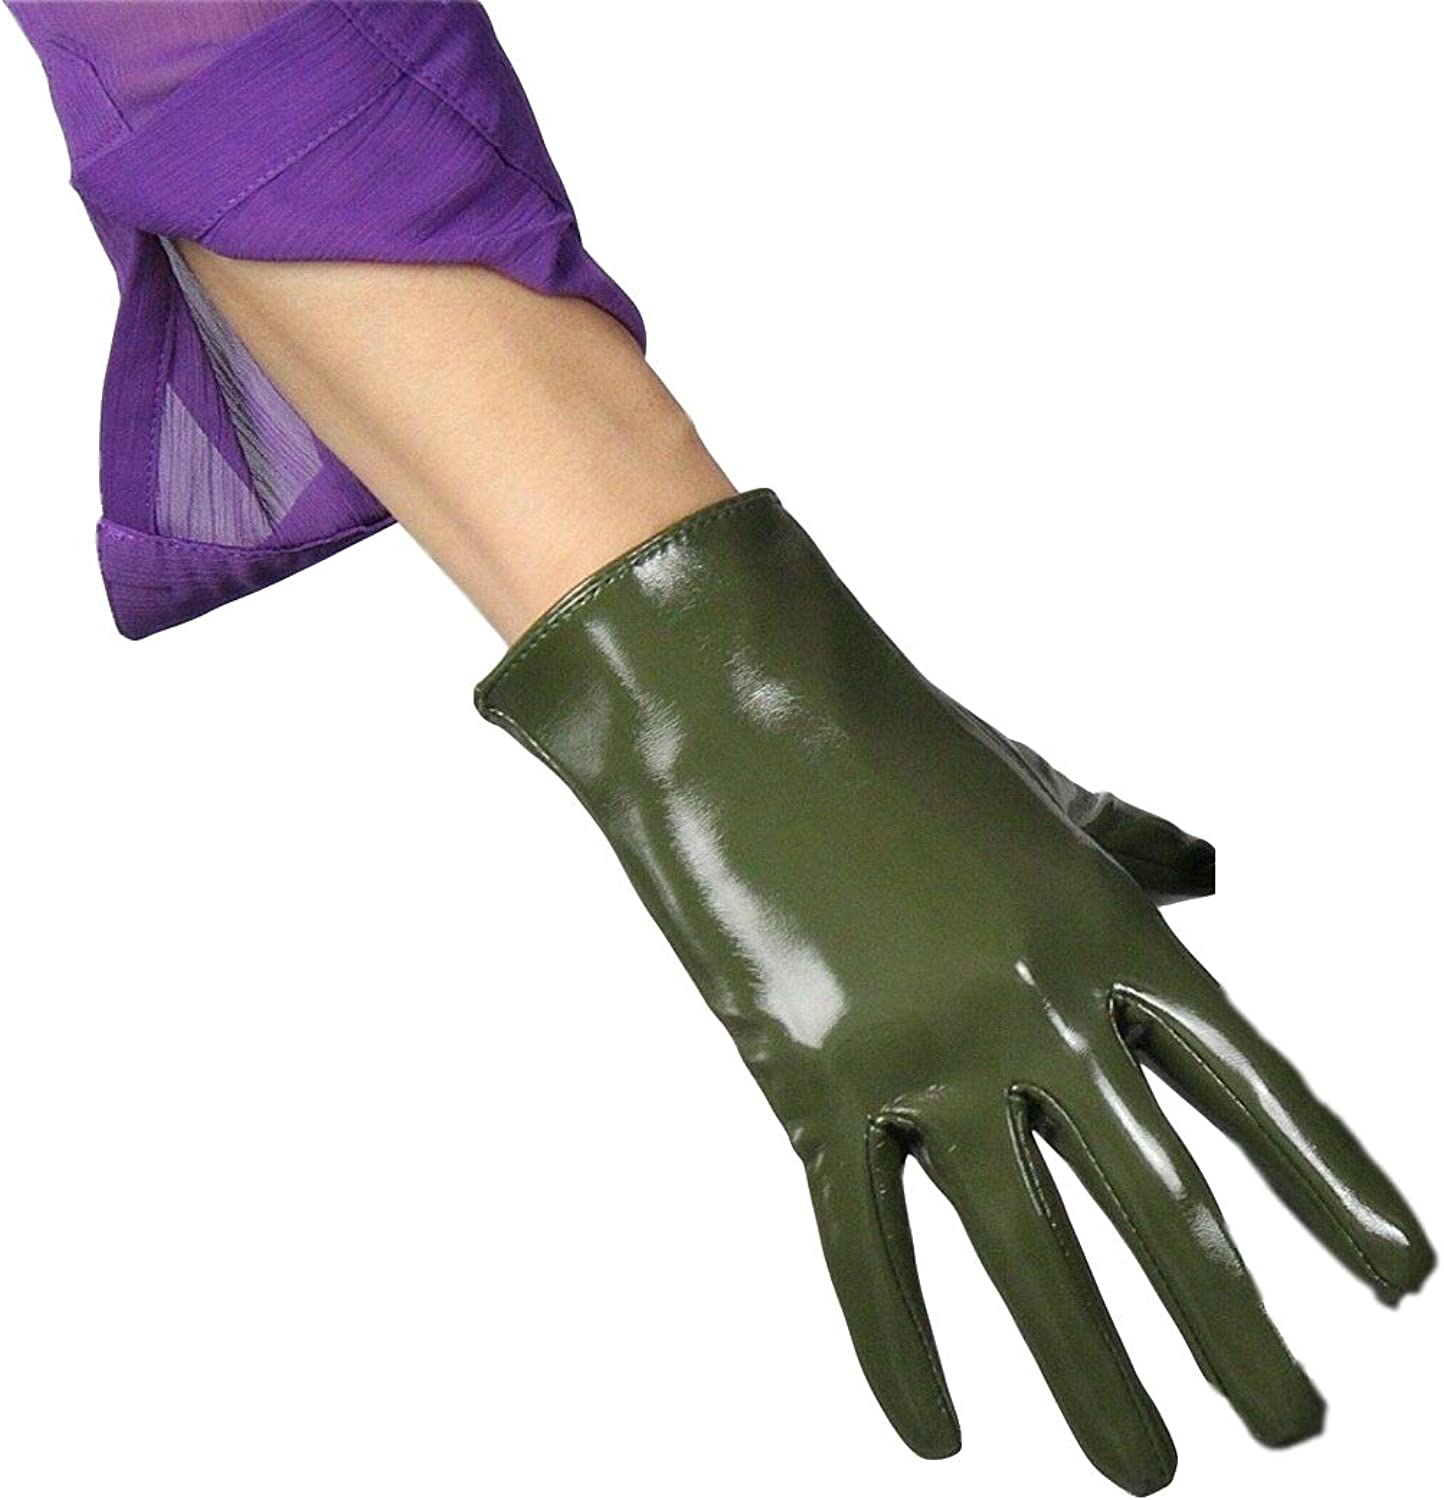 DooWay Faux Patent Leather Short Gloves Shiny 21 cm Army Green Cosplay Costume Warm Driving Gloves